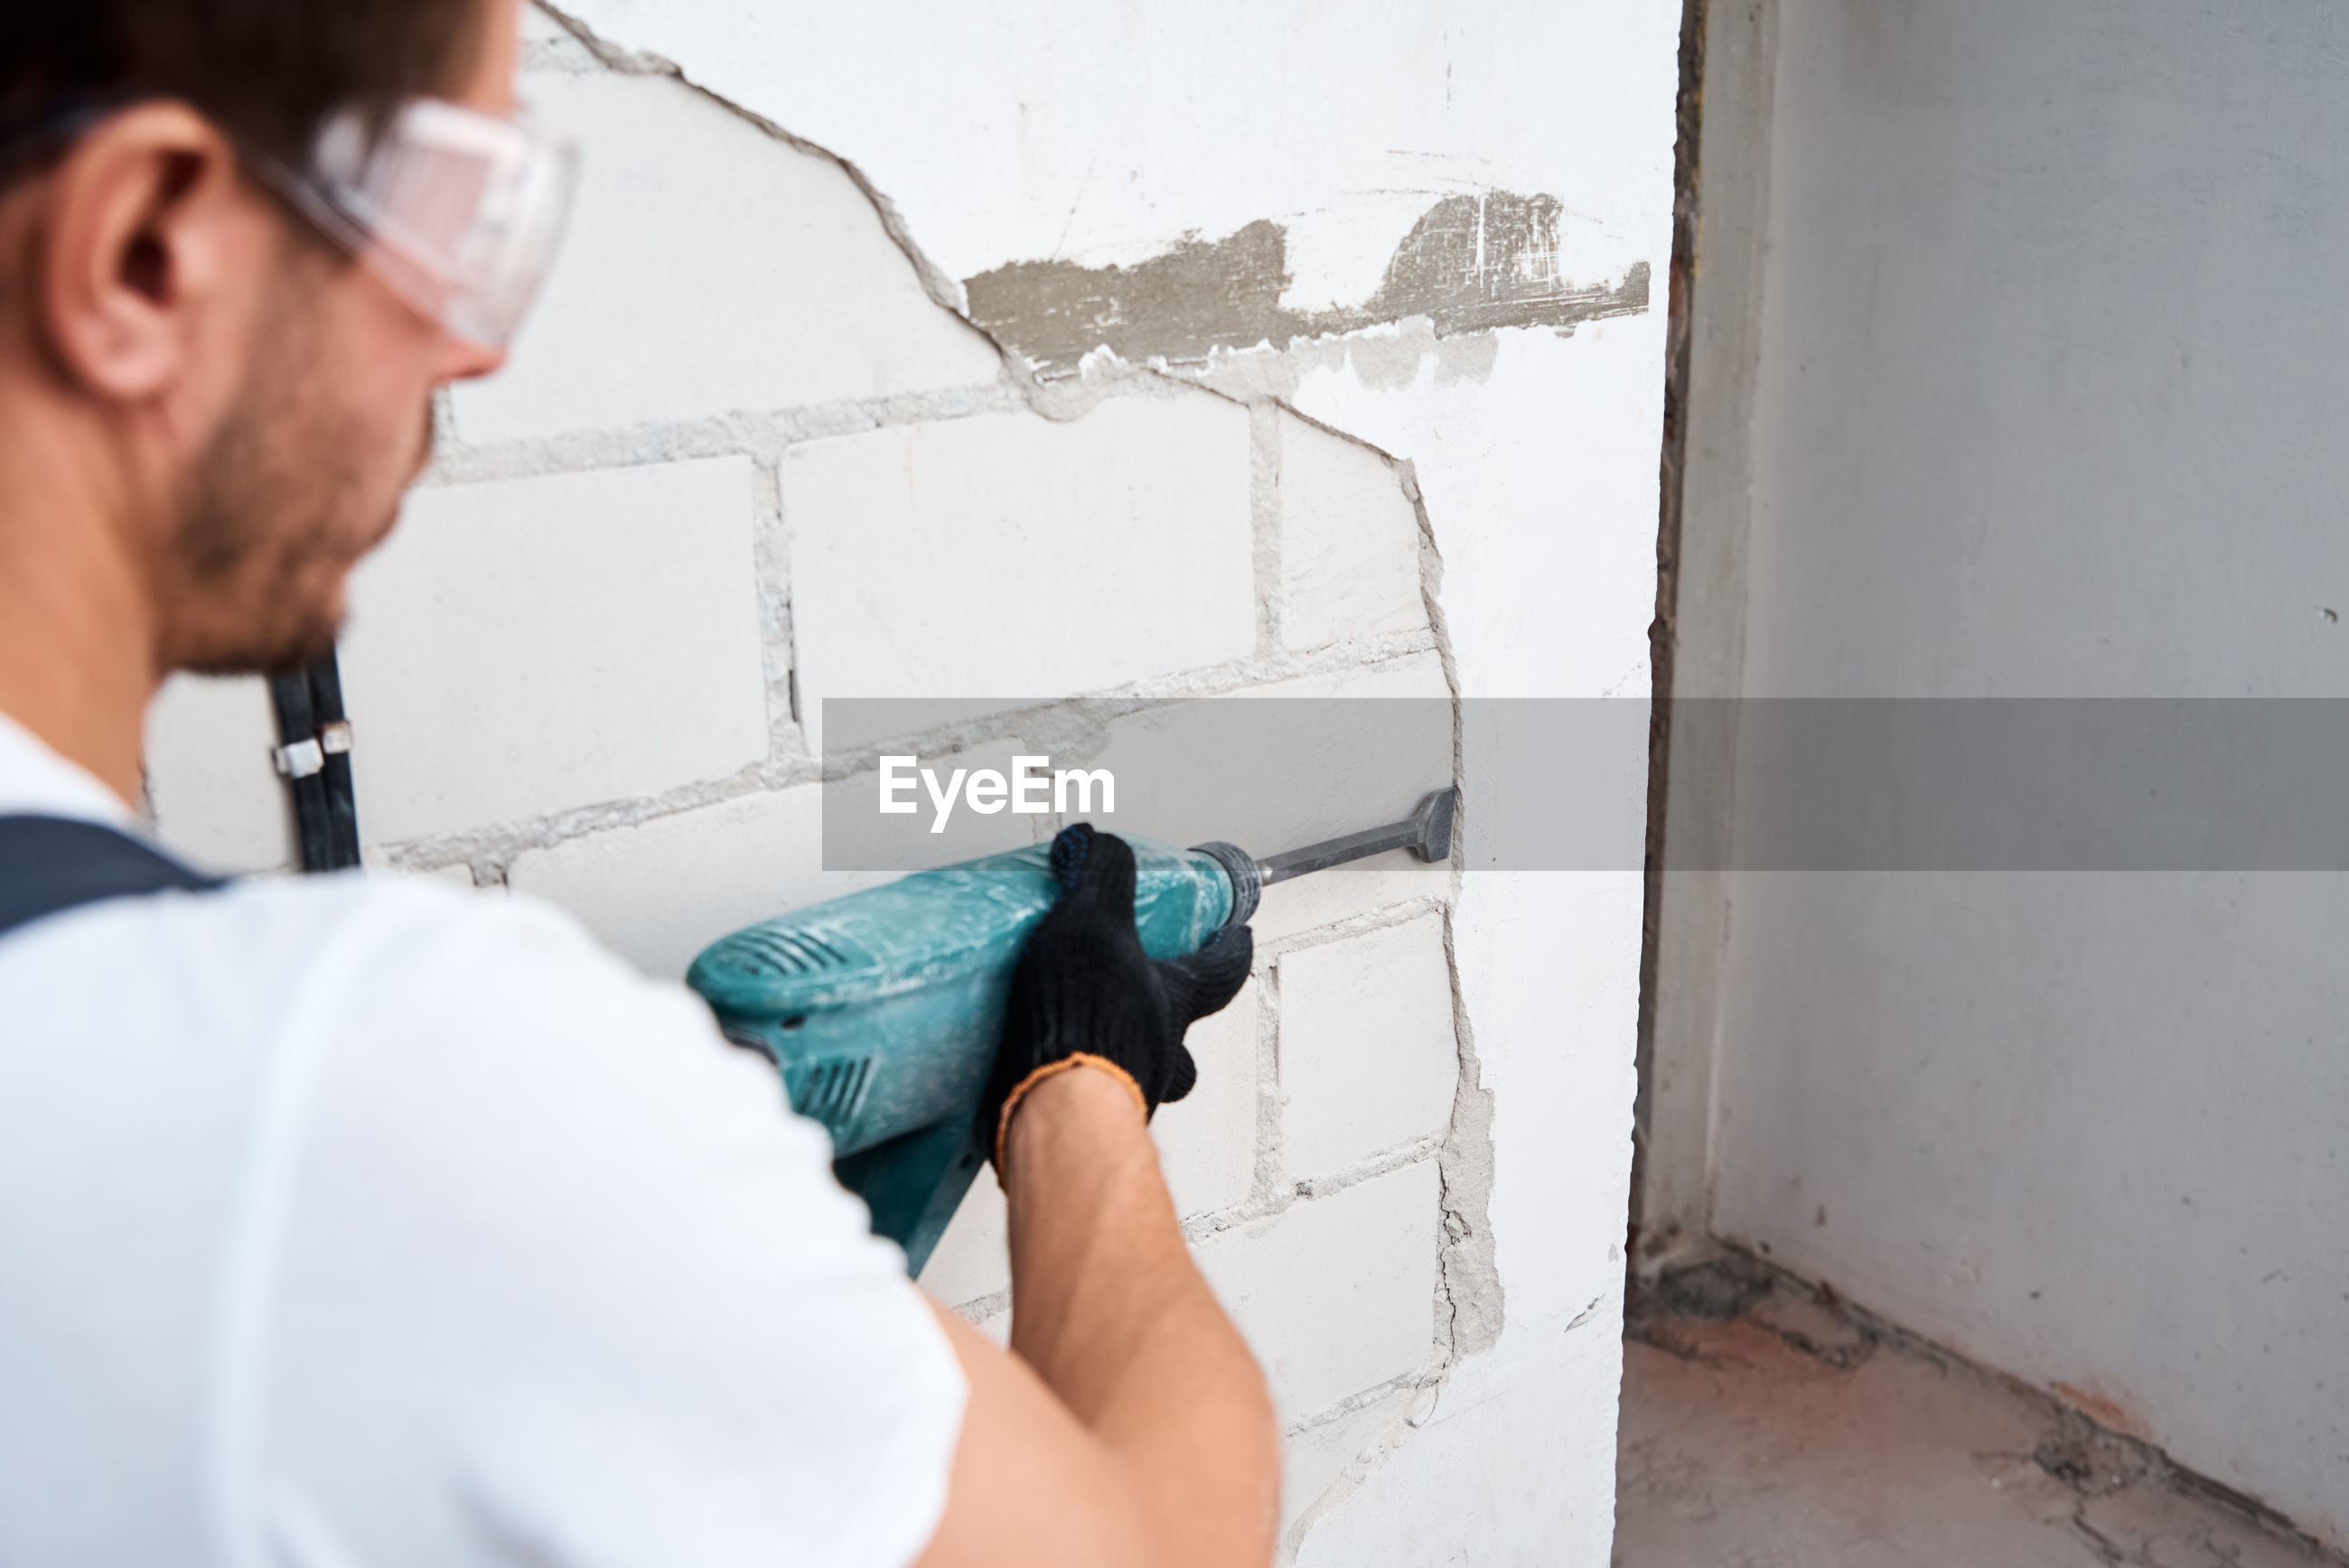 Portrait of man working on wall